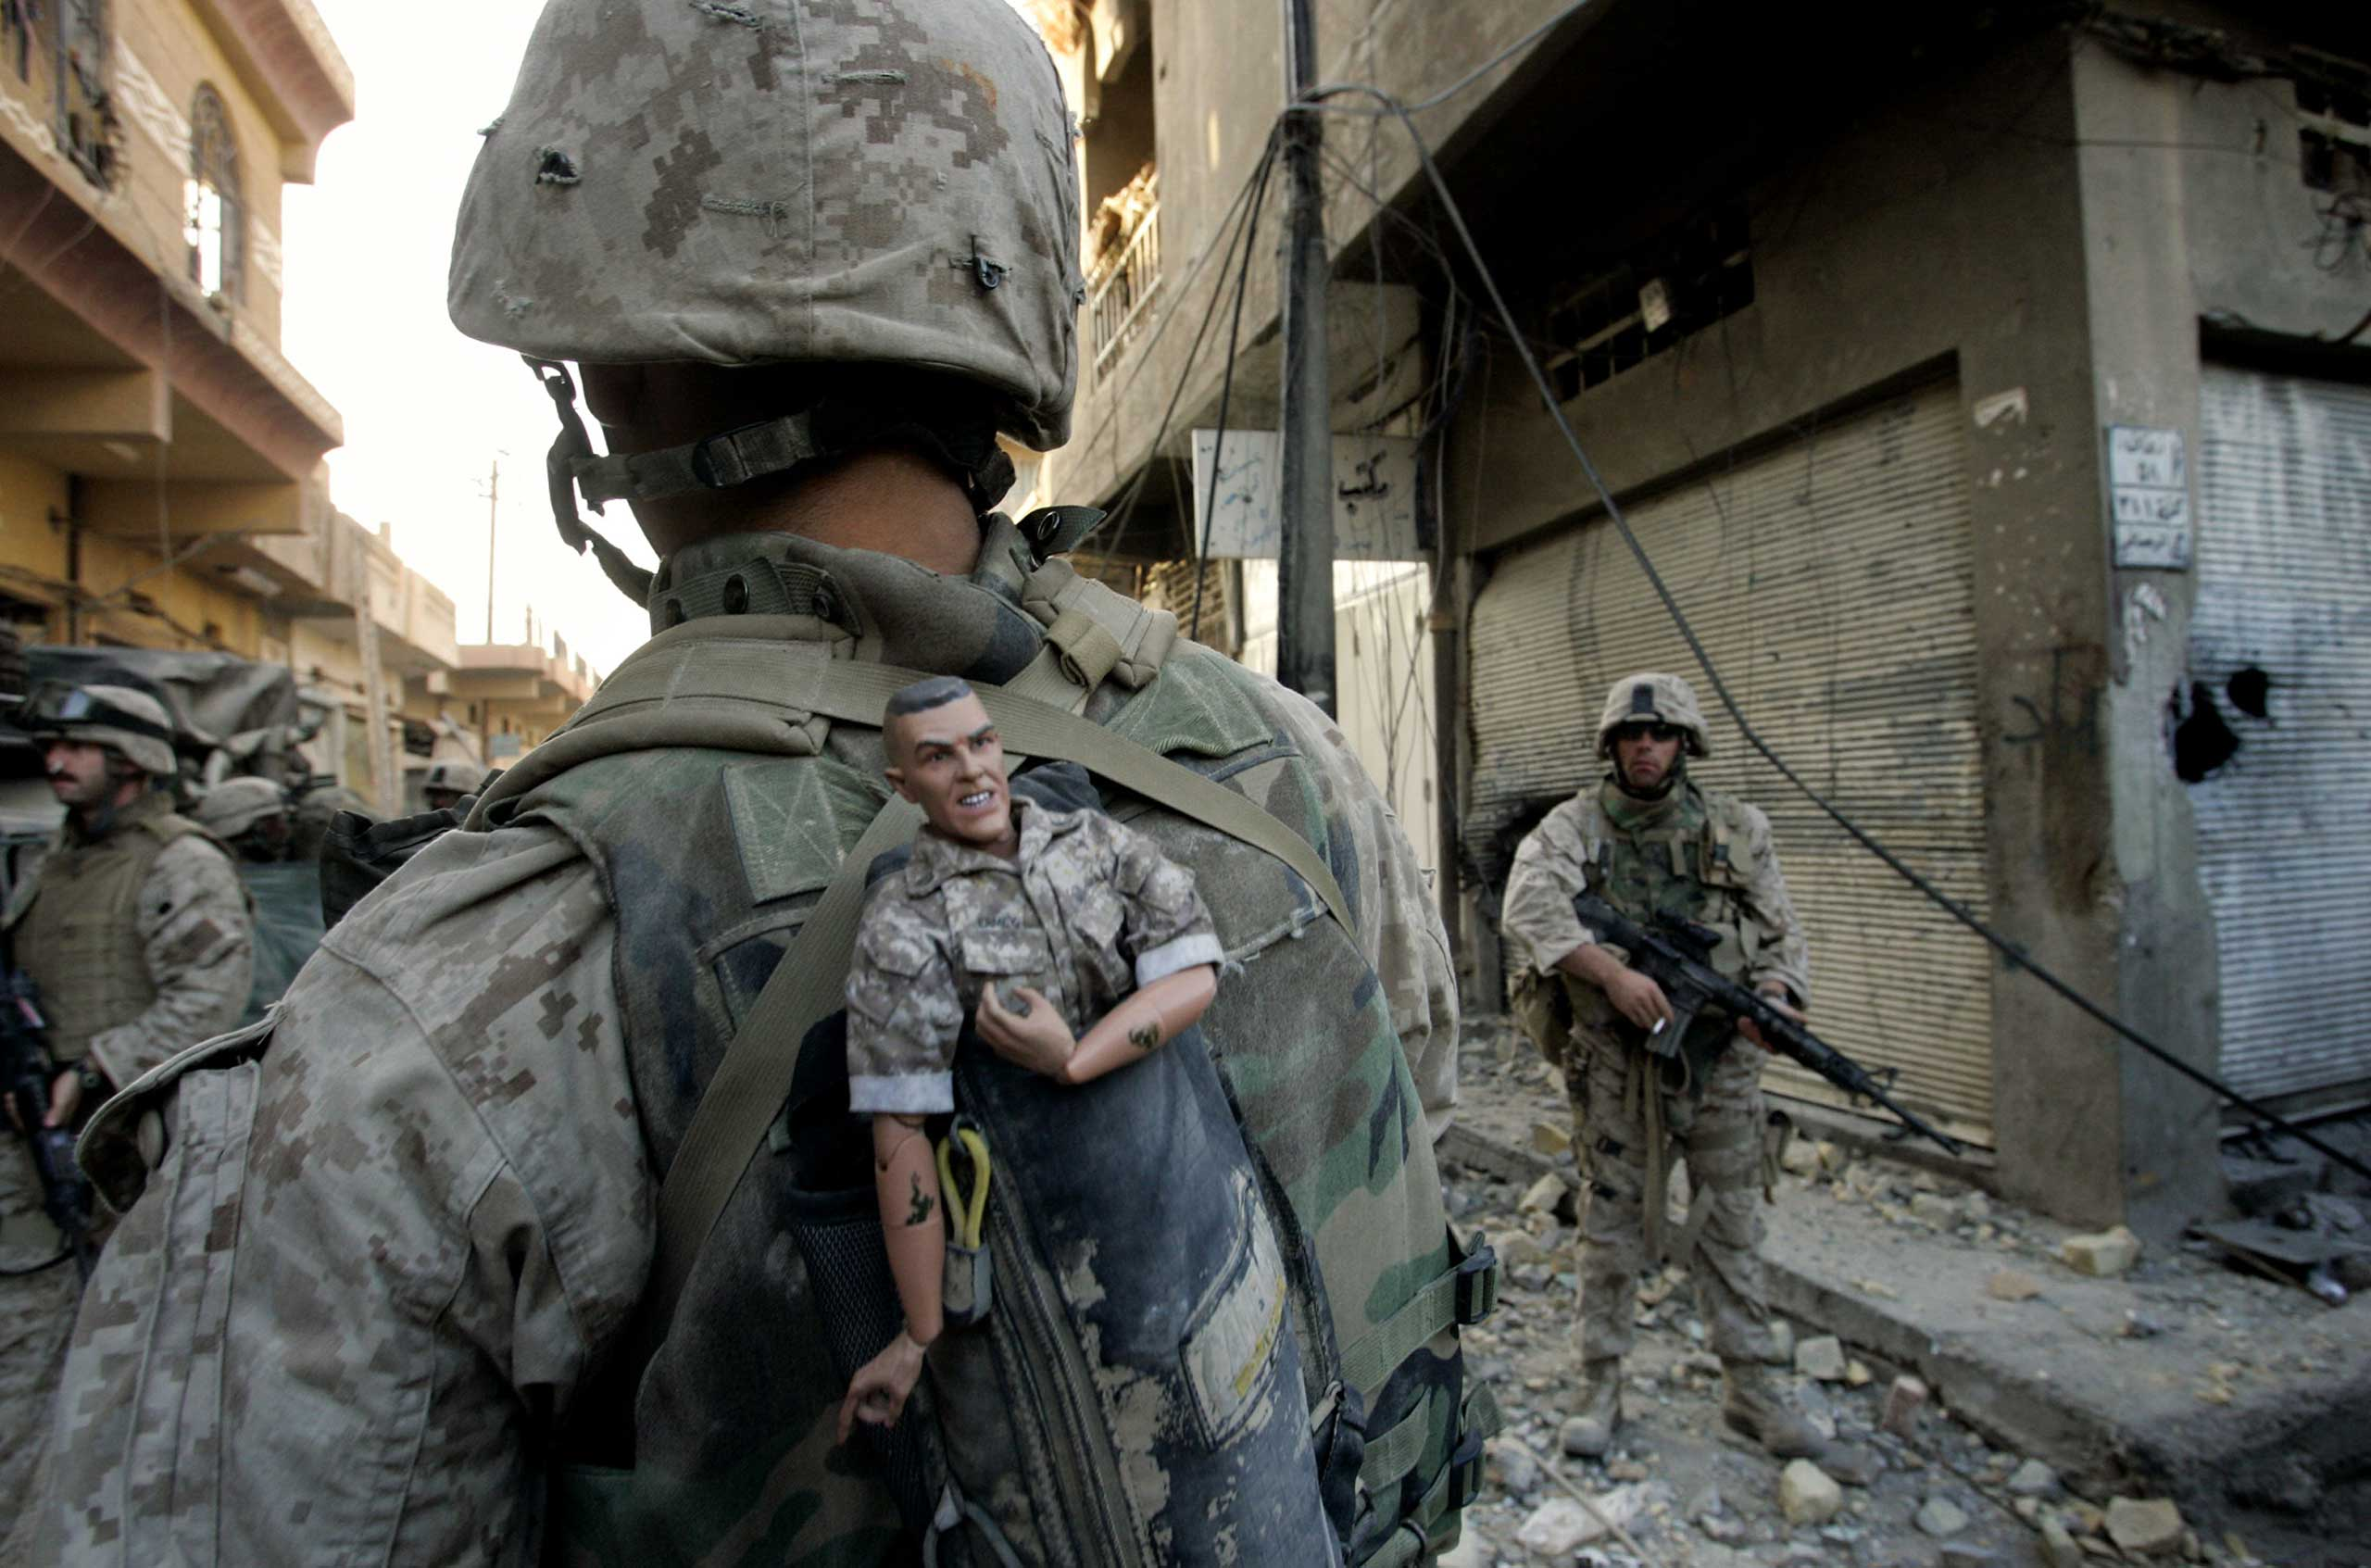 A U.S. Marine of the 1st Division carries a mascot for good luck in his backpack as his unit pushed further into the western part of Fallujah, Iraq, Nov. 14, 2004.